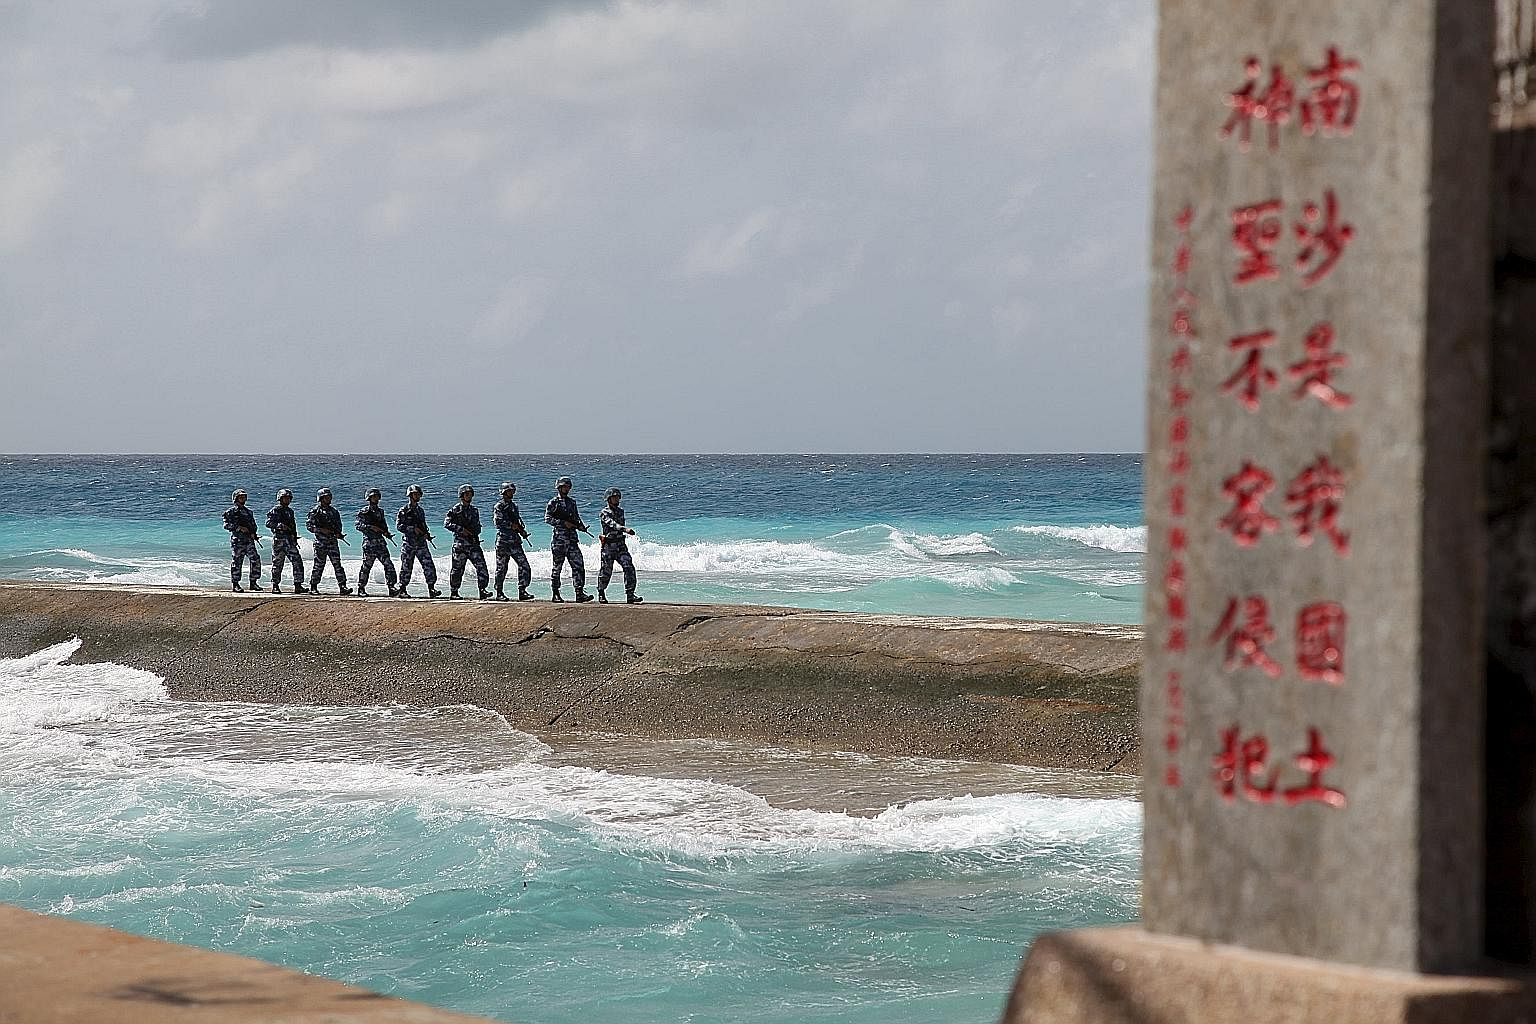 """""""Nansha is our national land, sacred and inviolable"""". China's adventurism in the South China Sea has prompted a change in Australian pol"""